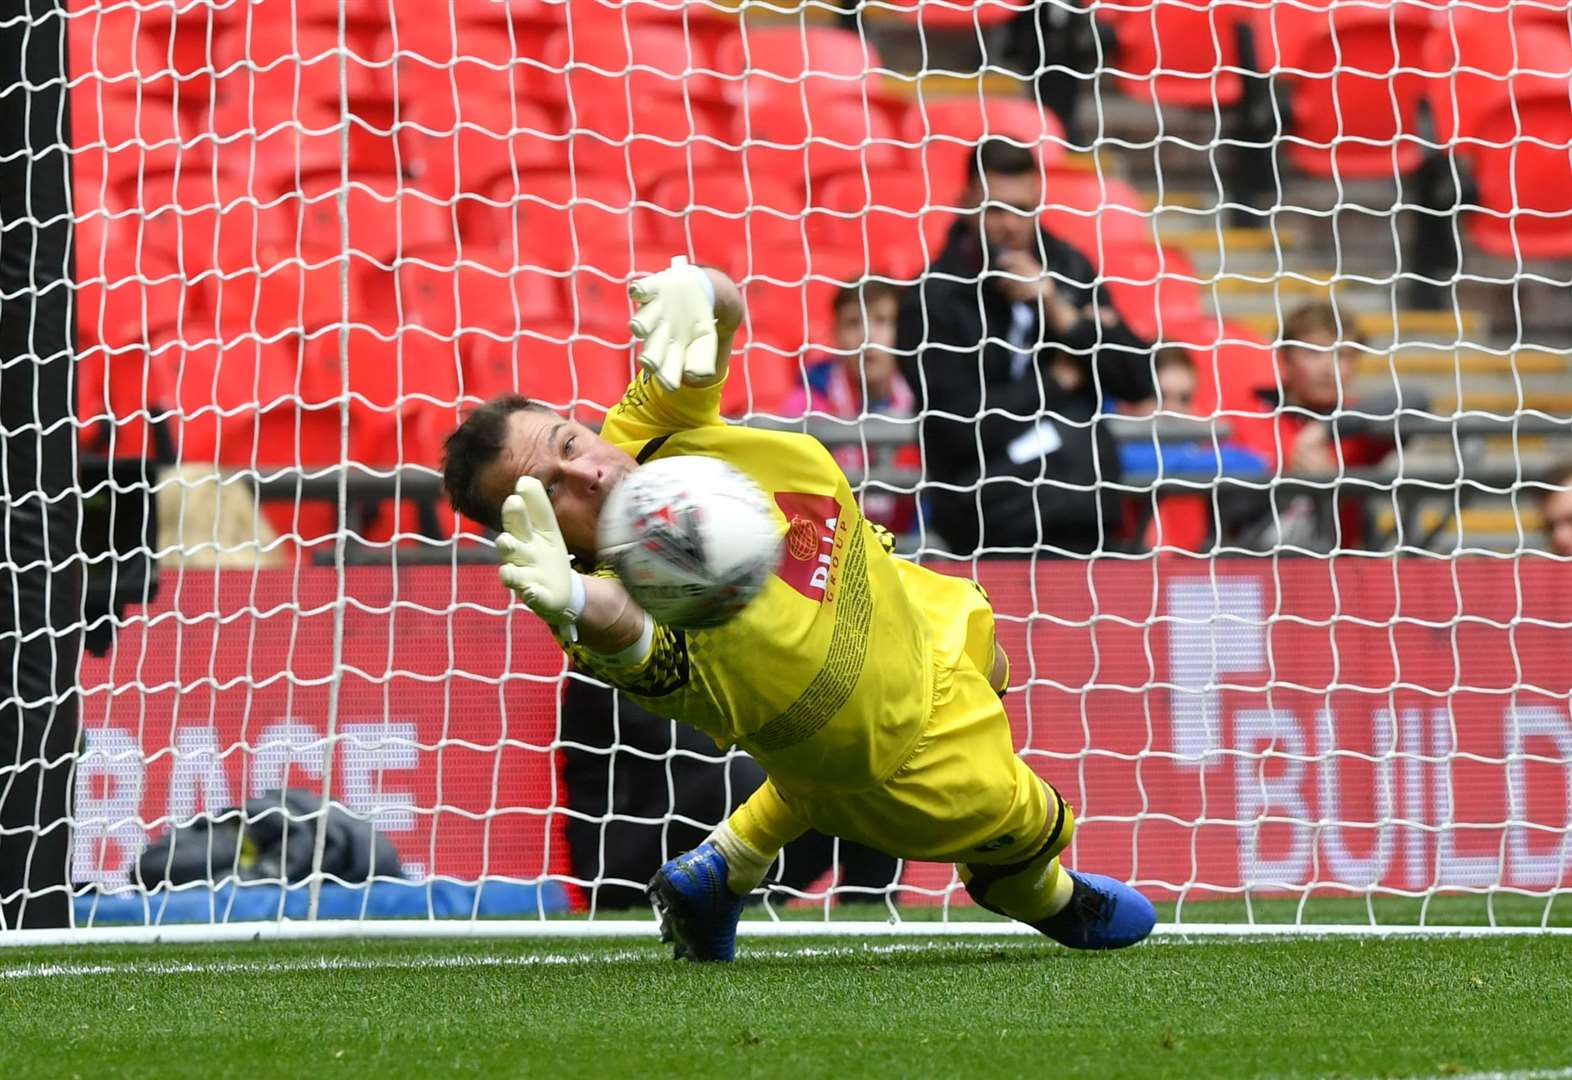 Report: Millers beaten at Wembley